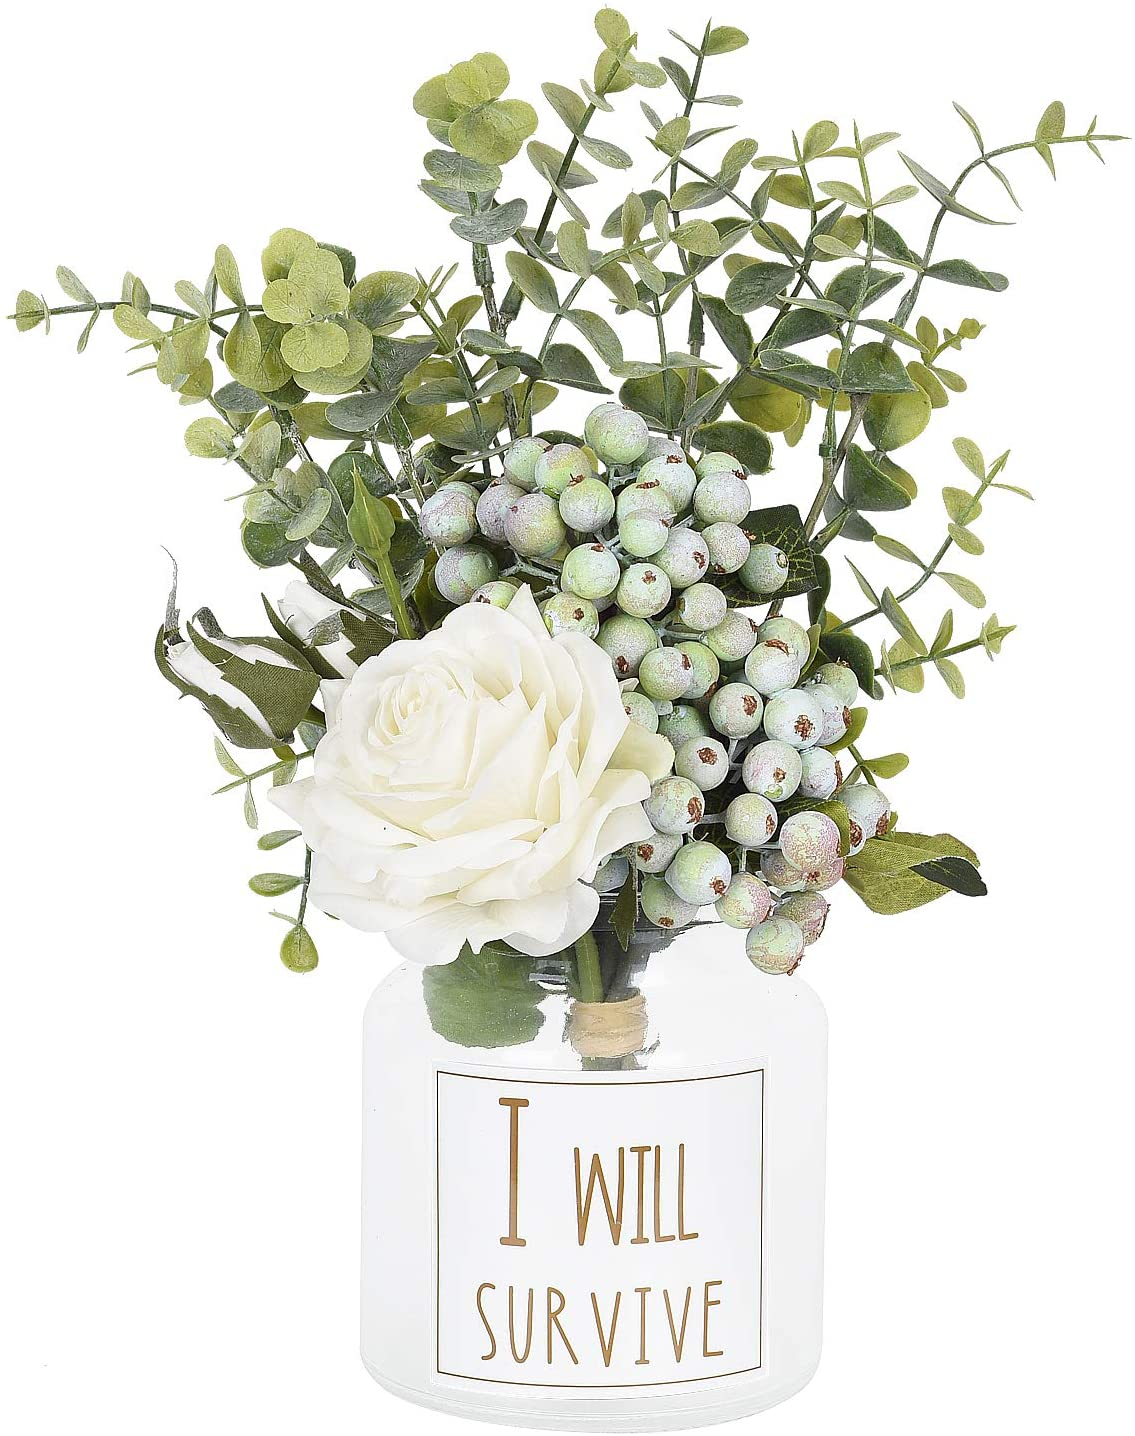 Coolmade Artificial Flowers Rose Bouquet Flower Arrangements Fake Rose Berry Eucalyptus Leaves Decor For Home Living Room Bathroom Walmart Com Walmart Com